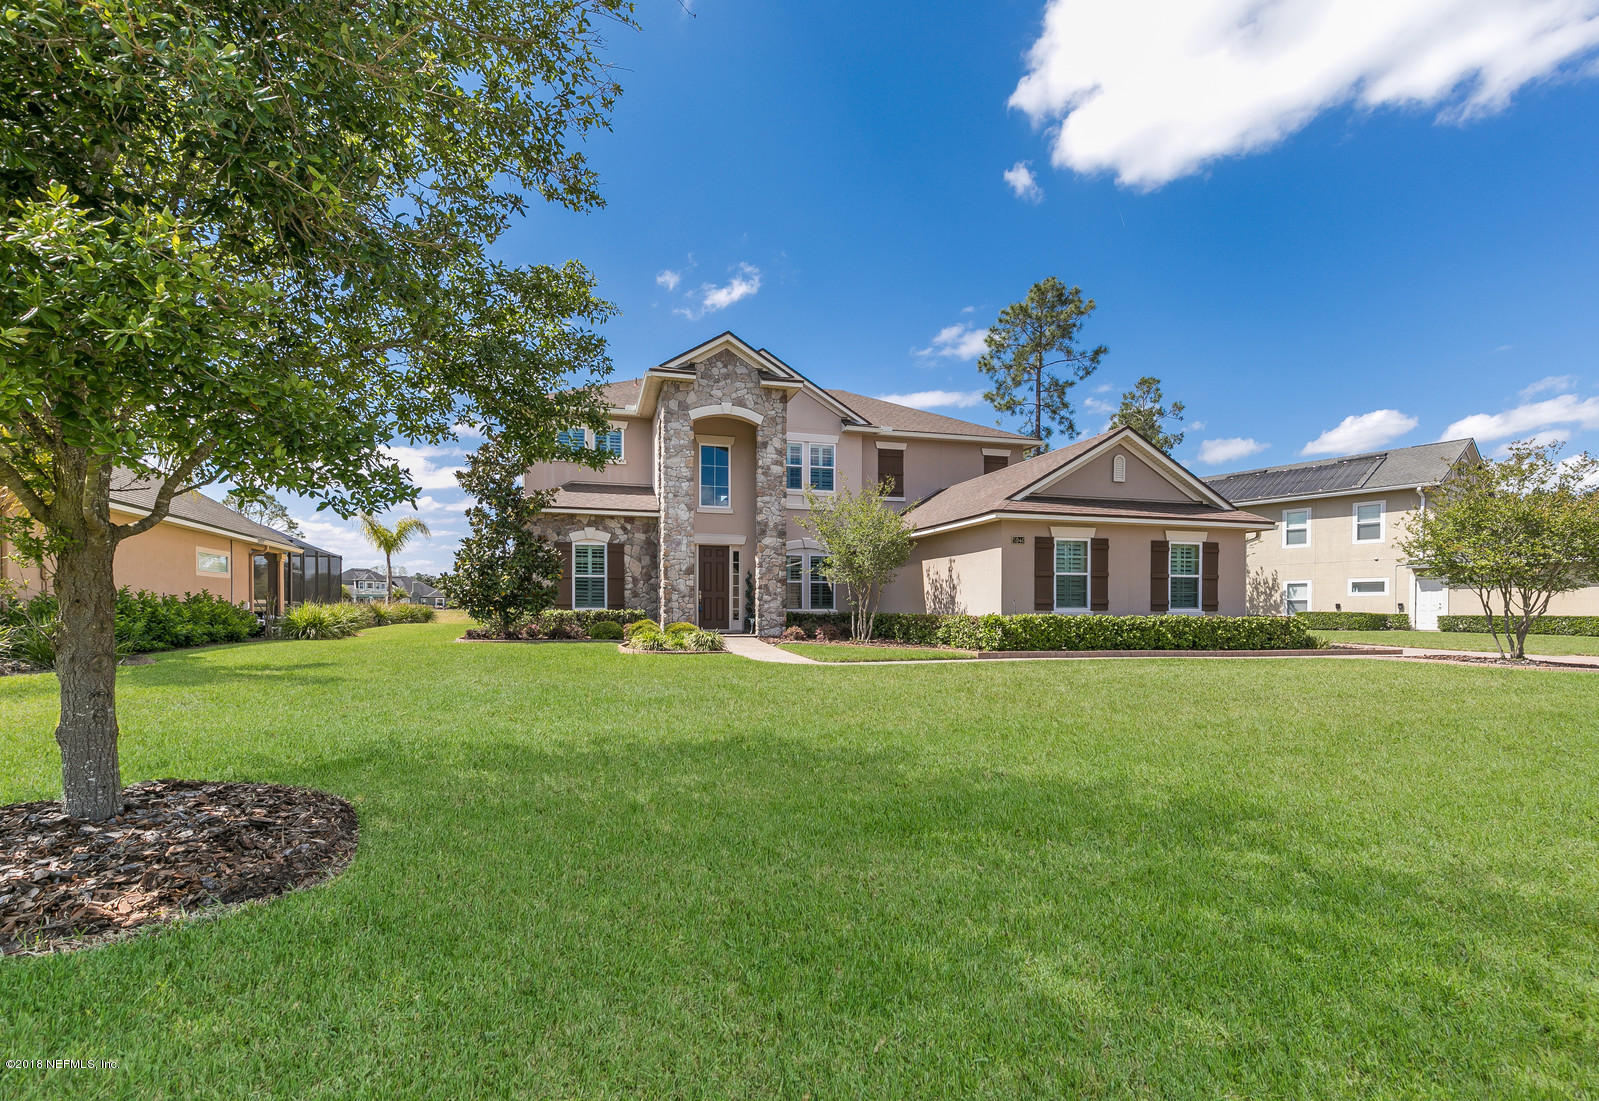 5040 BLACKHAWK, JACKSONVILLE, FLORIDA 32259, 5 Bedrooms Bedrooms, ,3 BathroomsBathrooms,Residential - single family,For sale,BLACKHAWK,928724